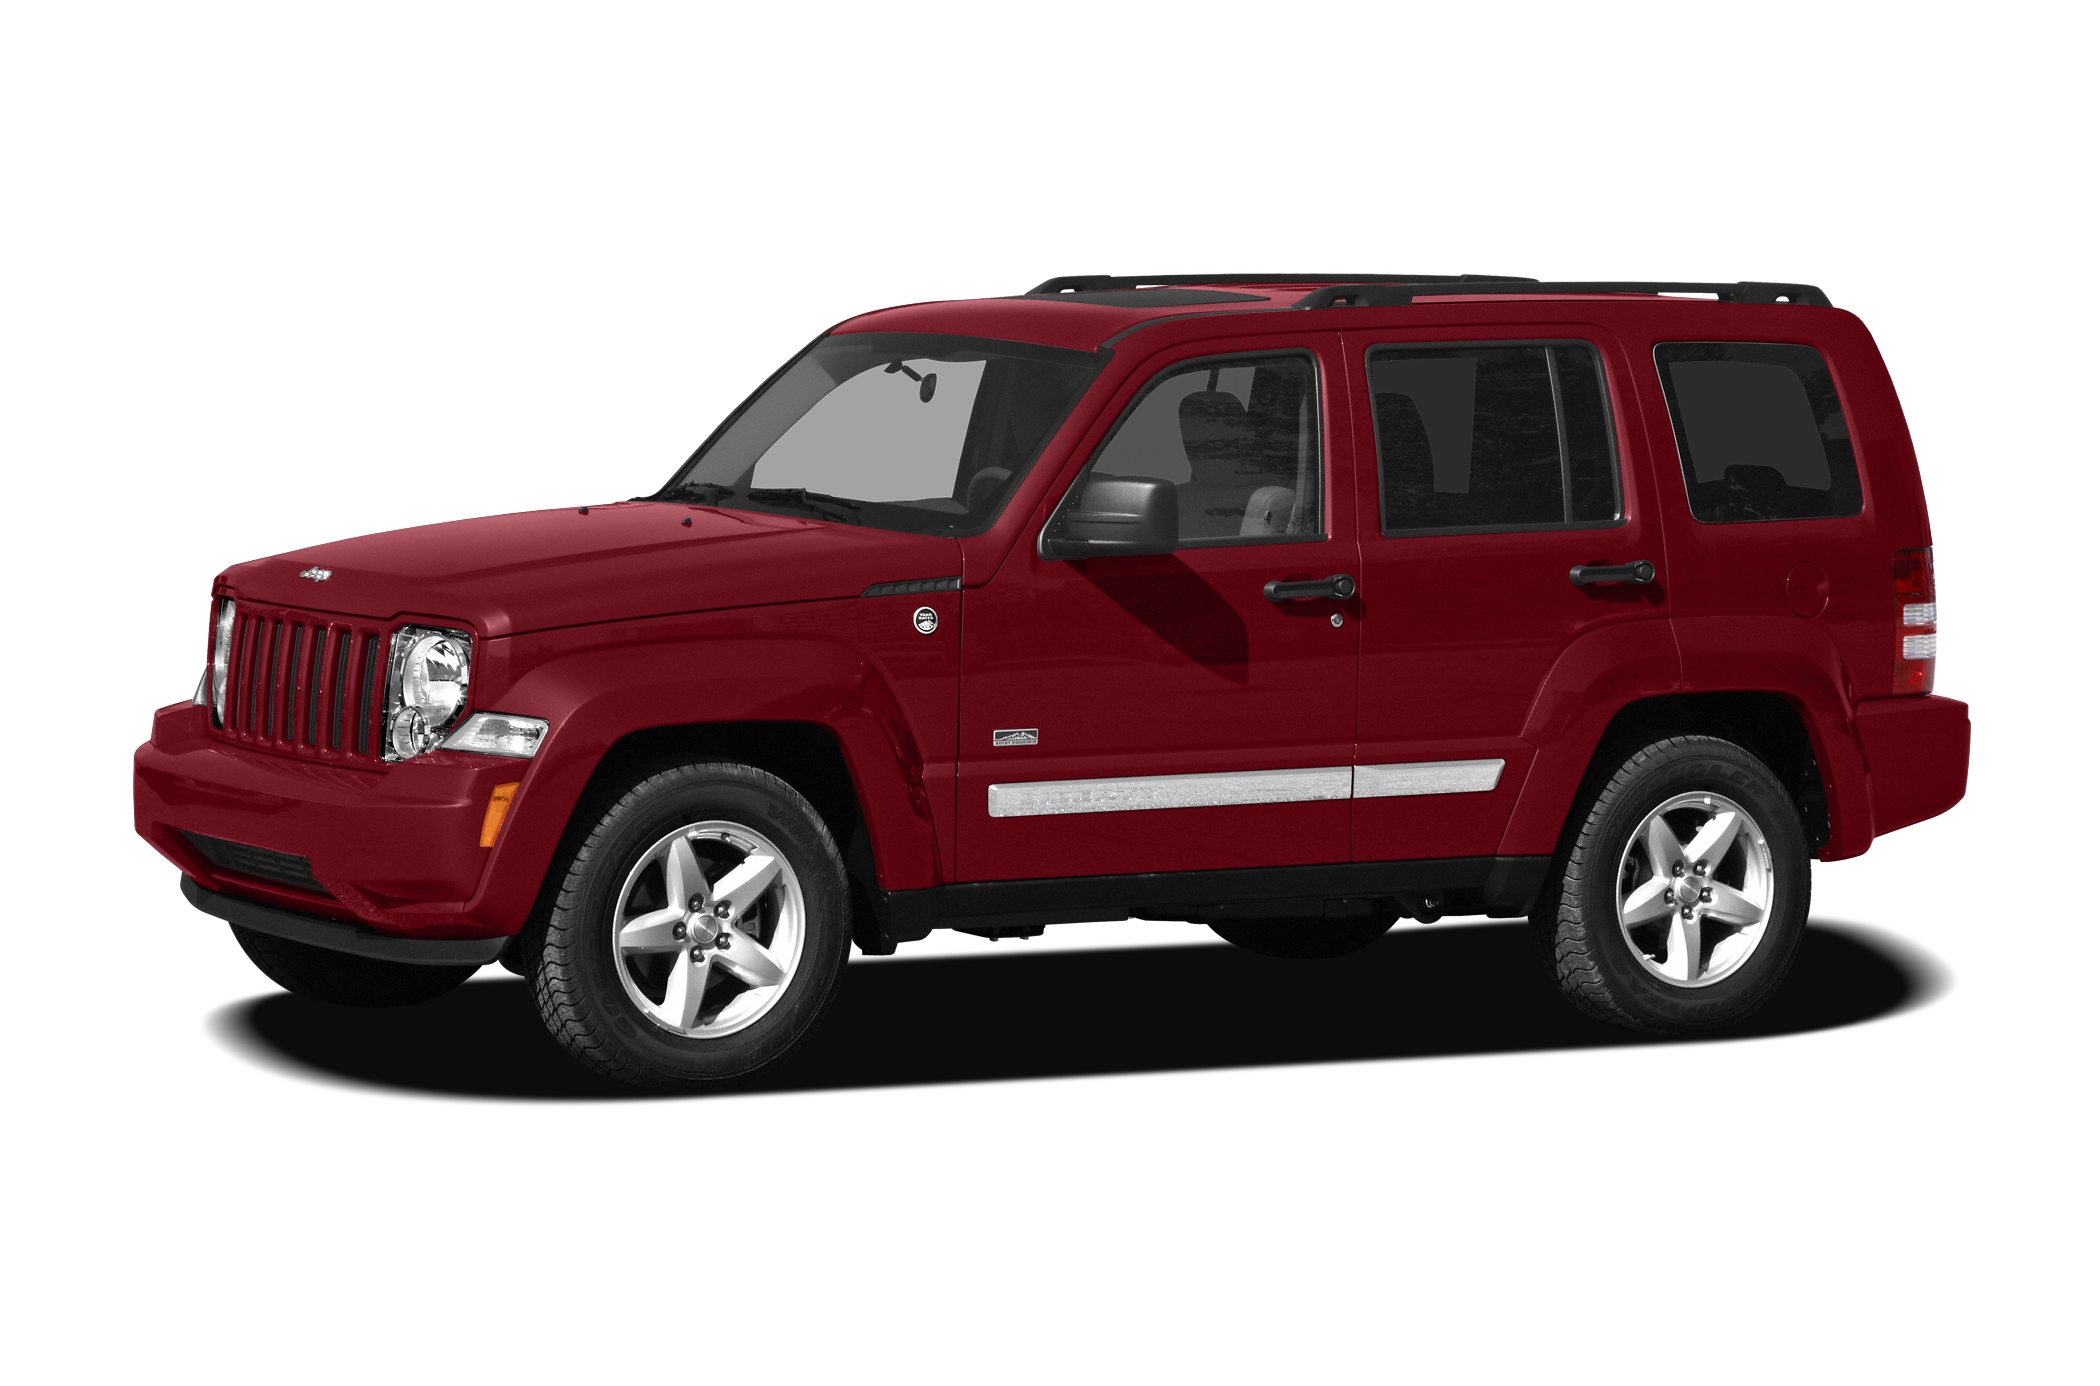 2018 Jeep Wrangler Price In San Diego - Wrangler Jeep Candy Apple Red | 2017 - 2018 Best Cars Reviews